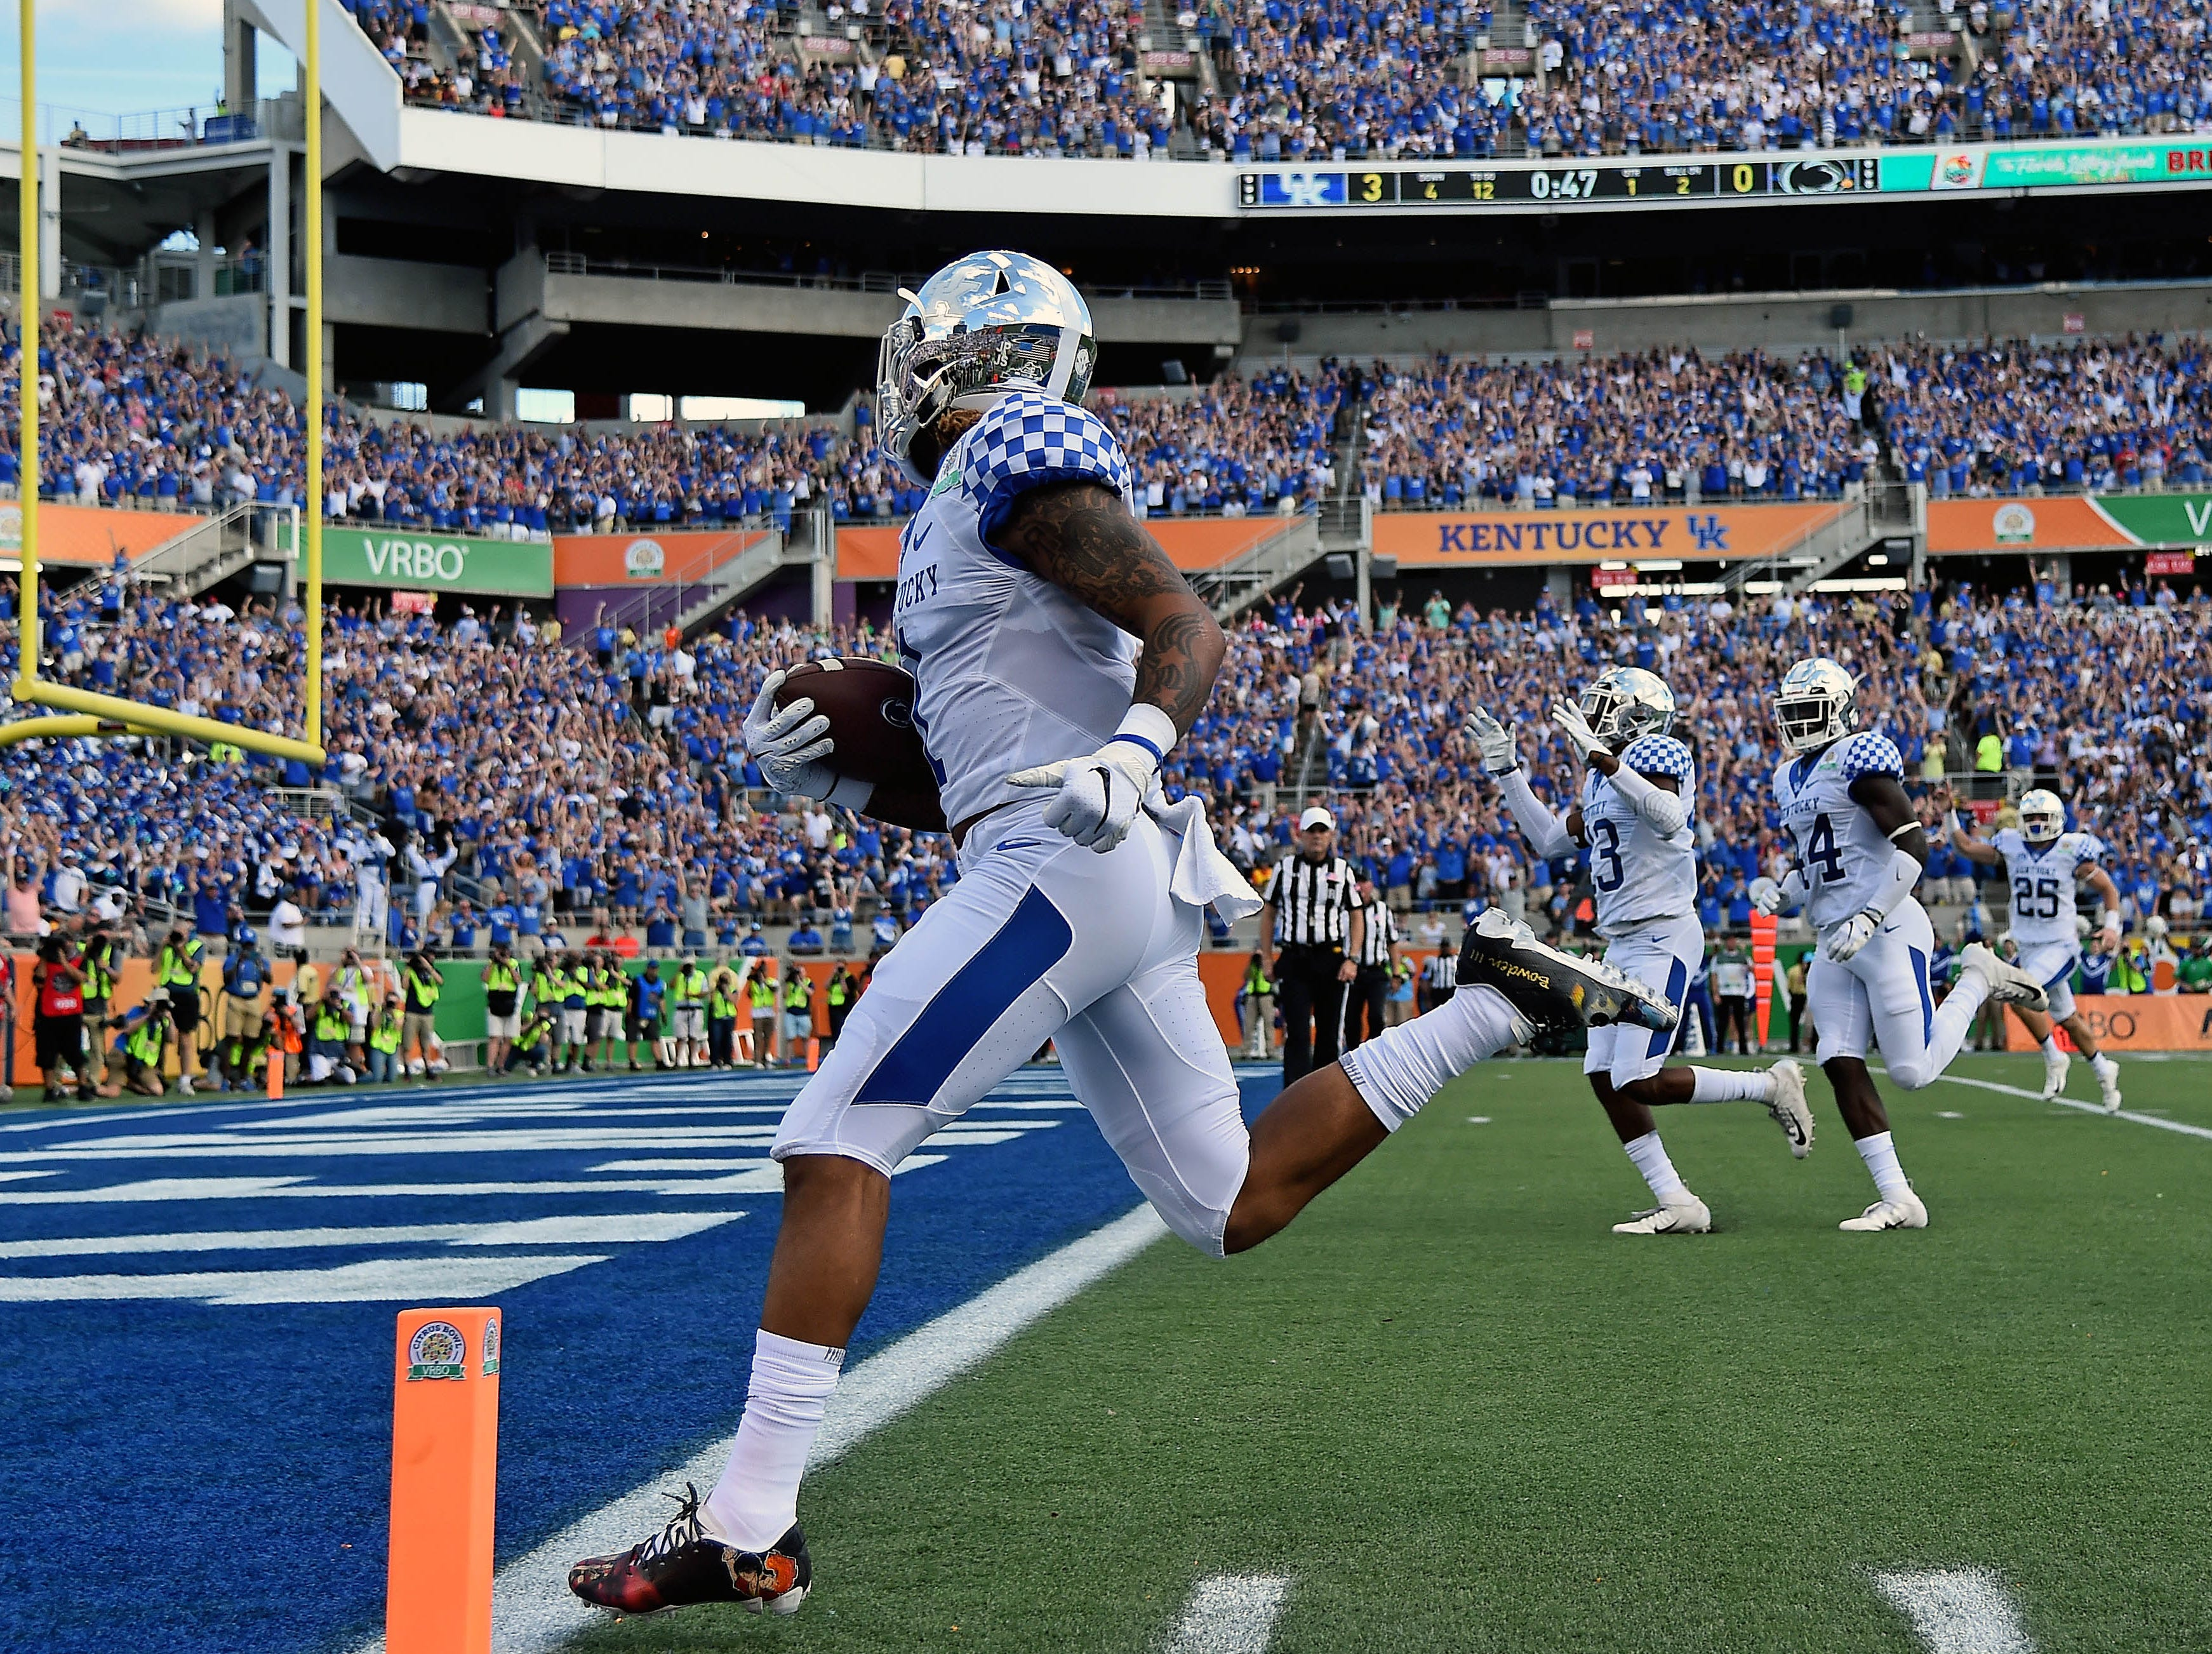 Kentucky returns a punt for a touchdown against Penn State during the first half of the Citrus Bowl.